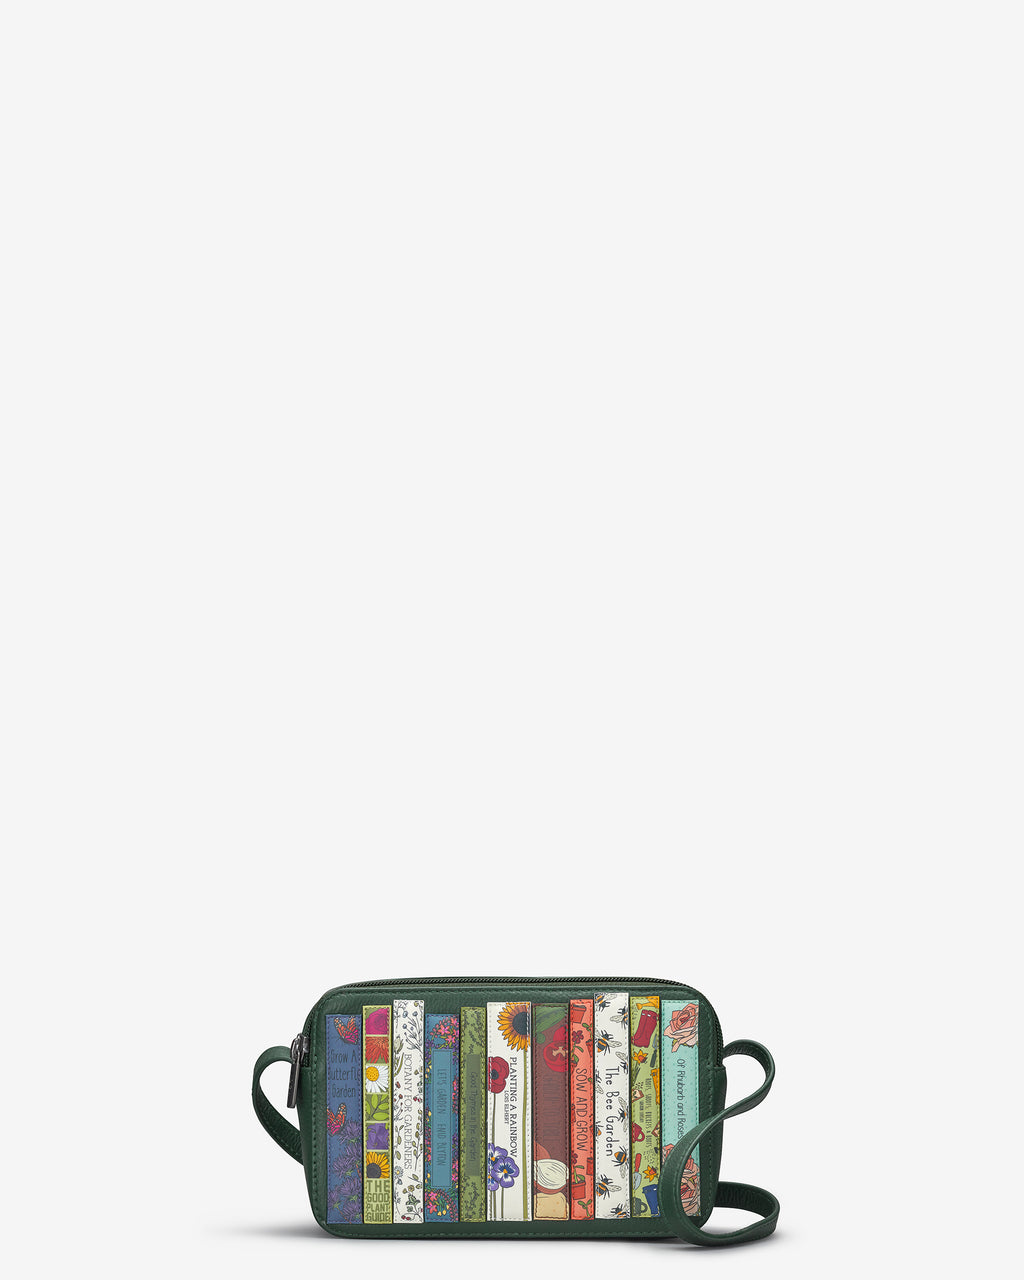 Green Fingers Bookworm Leather Porter Cross Body Bag